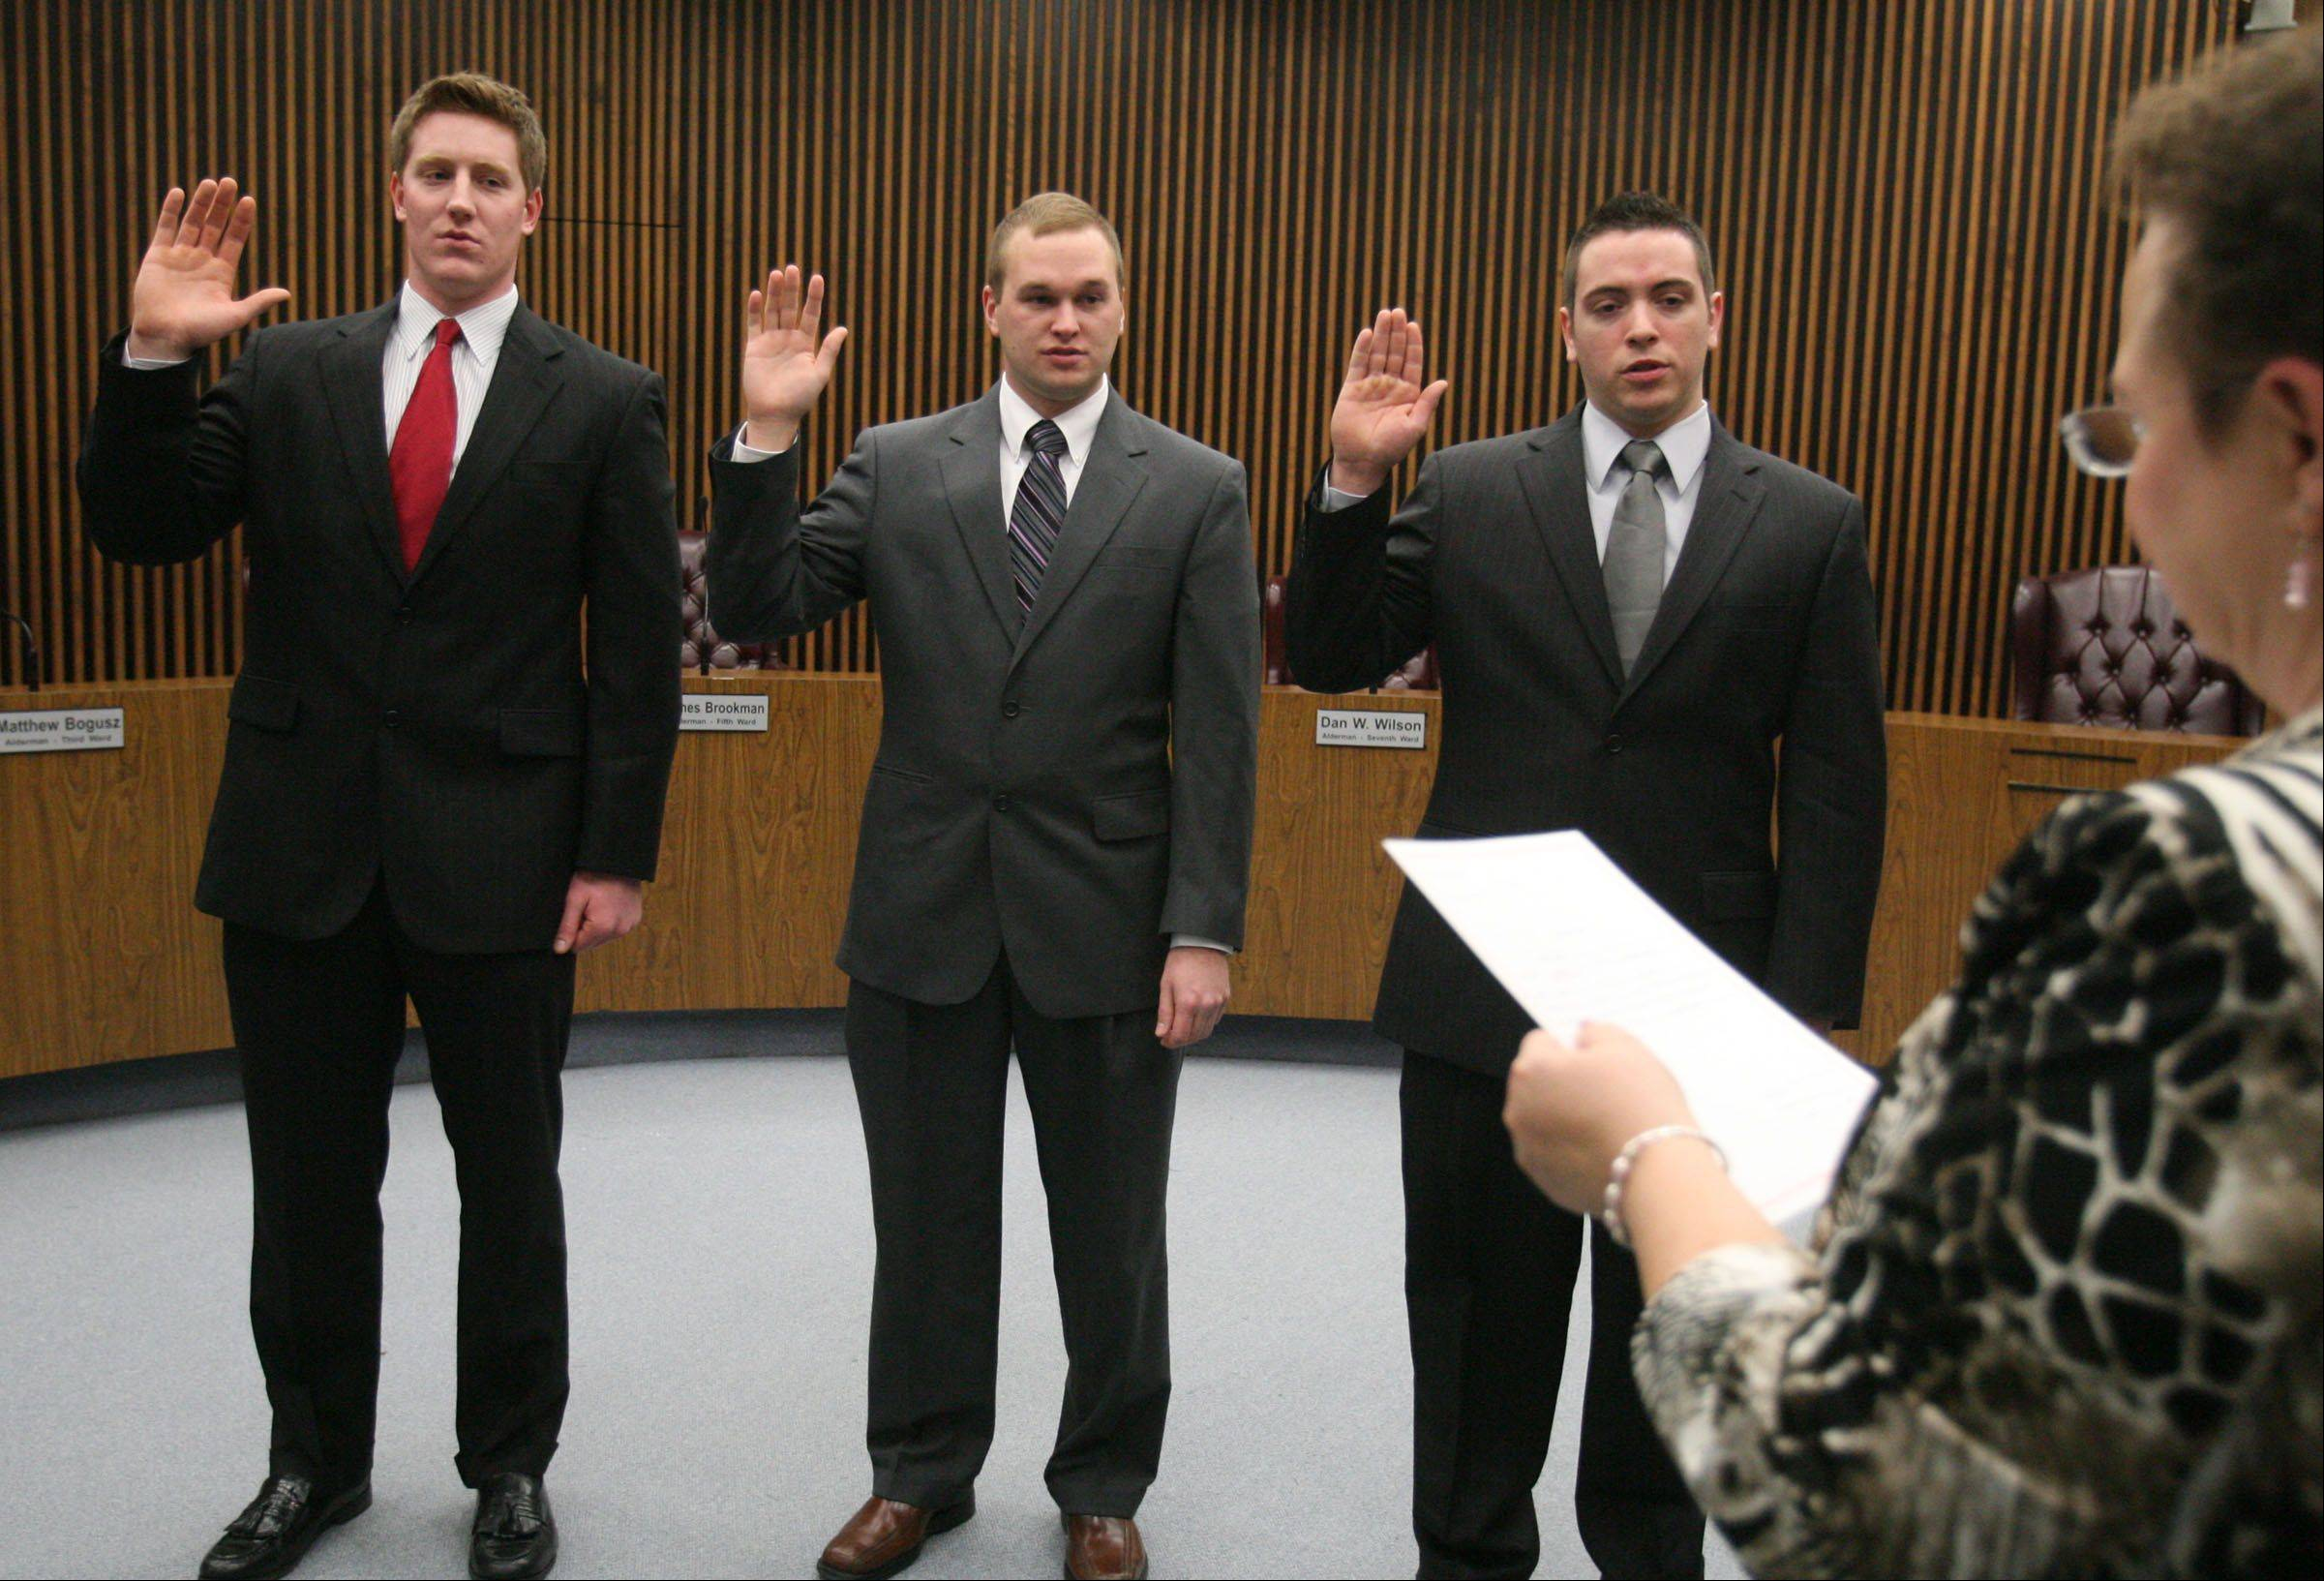 Firefighter paramedics Daniel Garhan, left to right, Patrick Tennant, and Edward Wilson were sworn in Wednesday by Des Plaines City Clerk Gloria Ludwig in the city council chambers at Des Plaines City Hall.